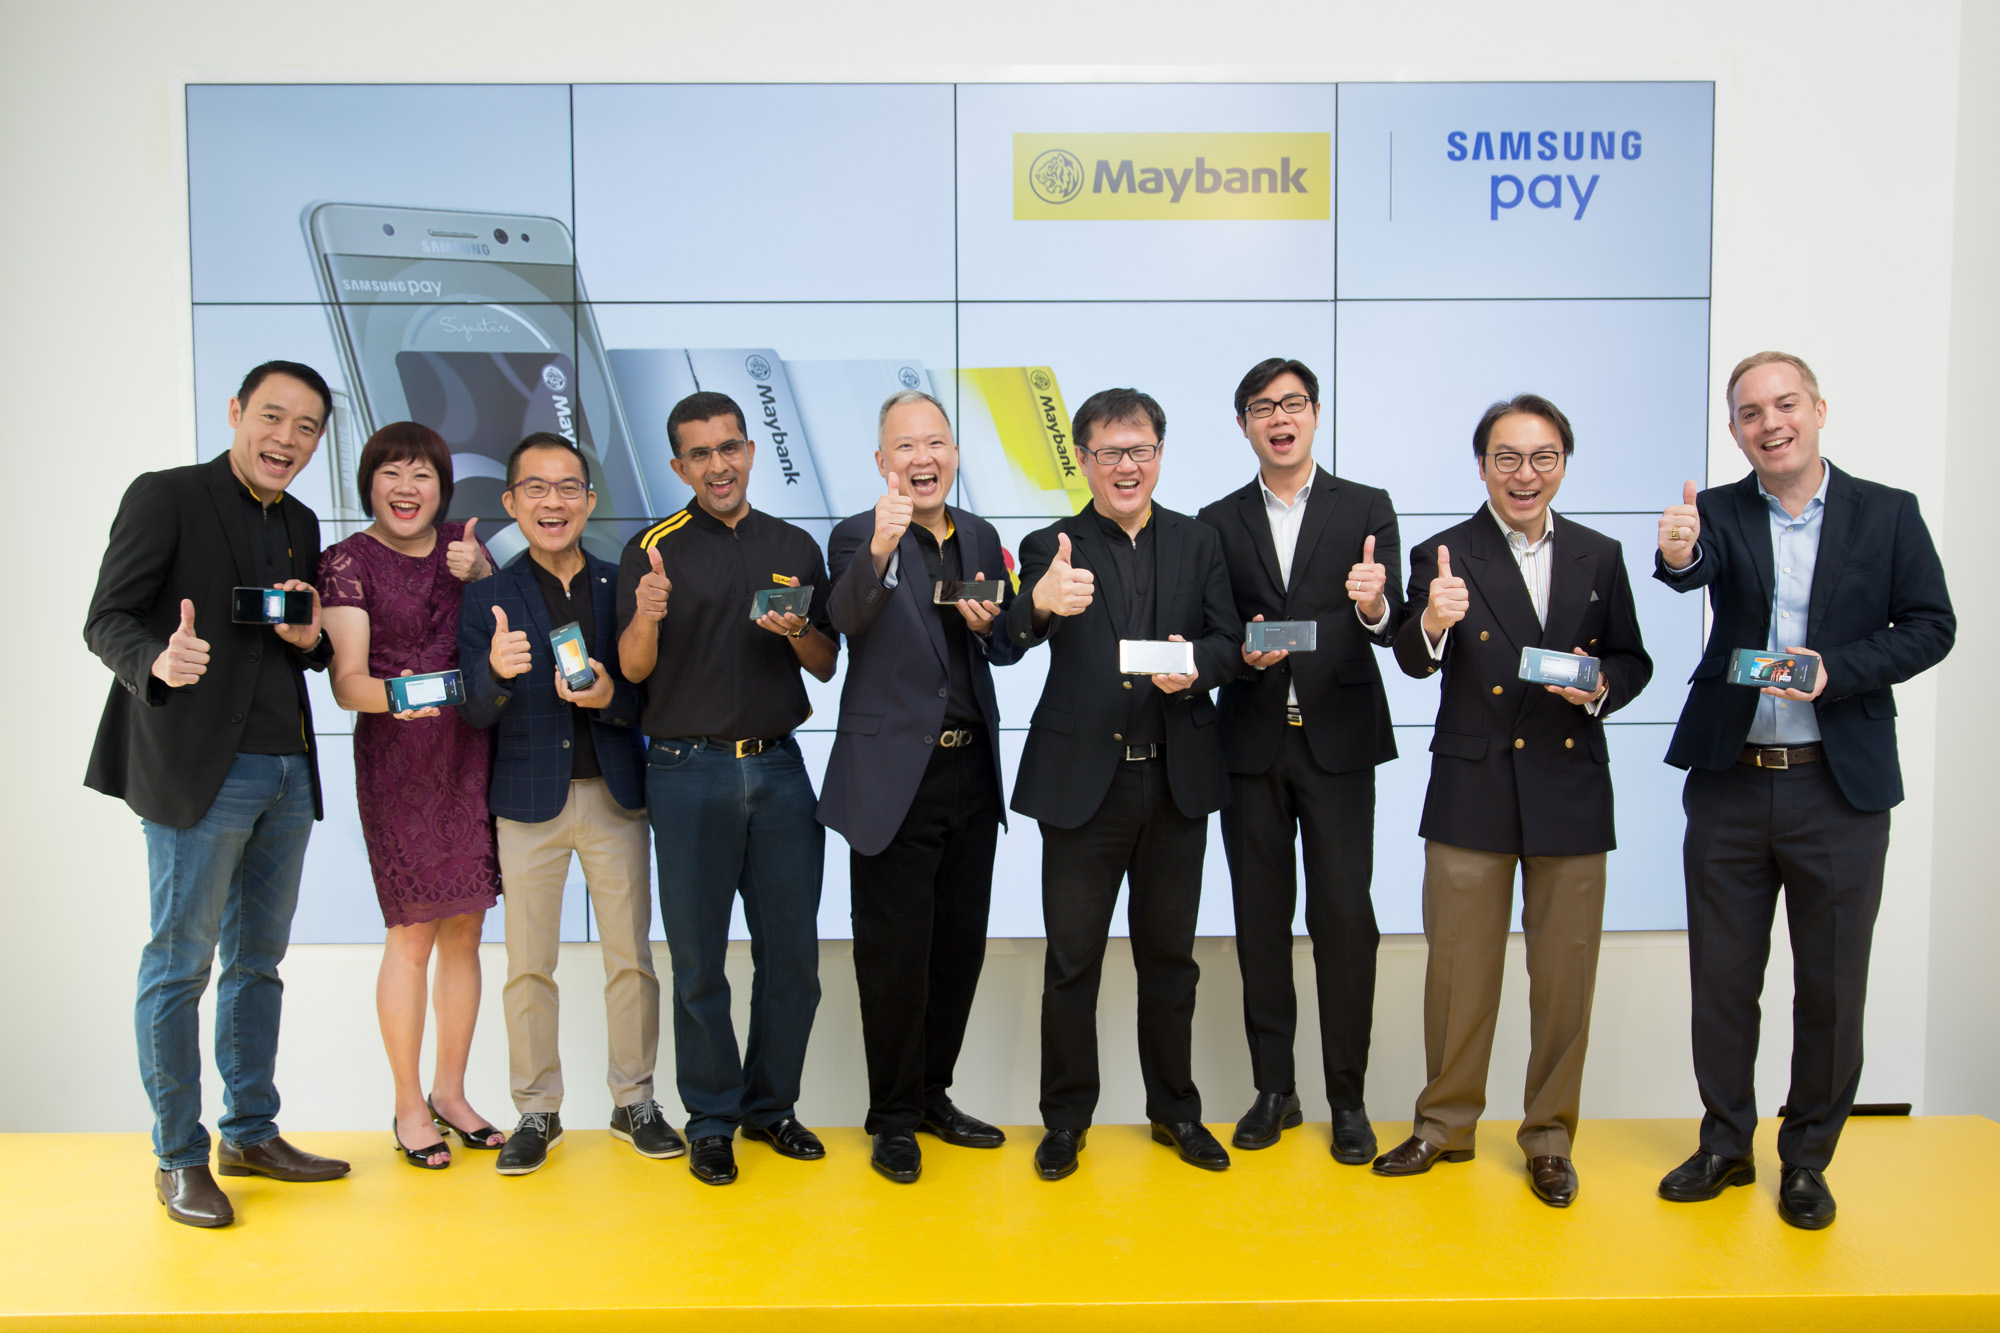 Maybank Samsung Pay Mobile Wallet Is Finally Here!